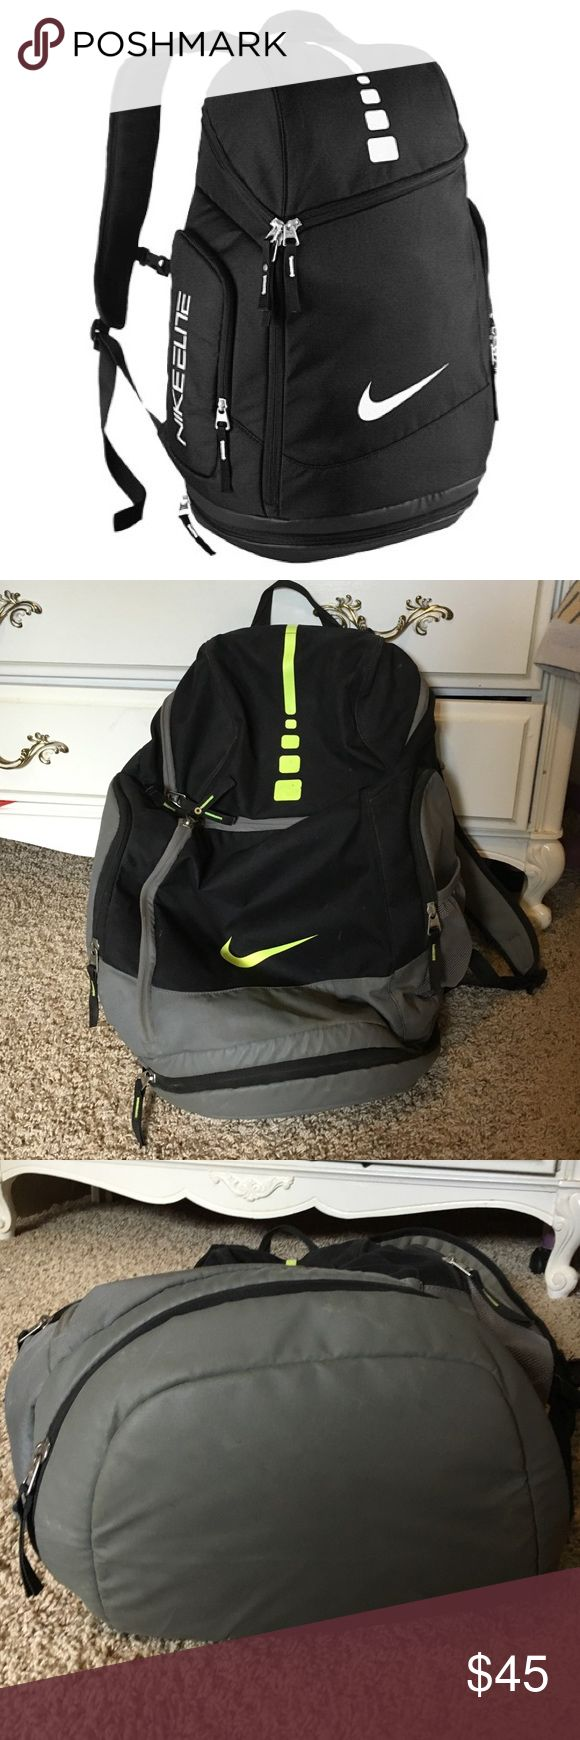 Nike Elite Backpack Nike Elite Backpack. Bought new last year for school, used it all school year but it's still in great condition. Only flaw is a small stain on the back (pictured). Has tons of space on the inside including a spot for your laptop. Water bottle holder, bottom unzips for shoes or whatever you'd like to place there. Pencil holder on the top. Has tons of life left, from a smoking home. Nike Bags Backpacks